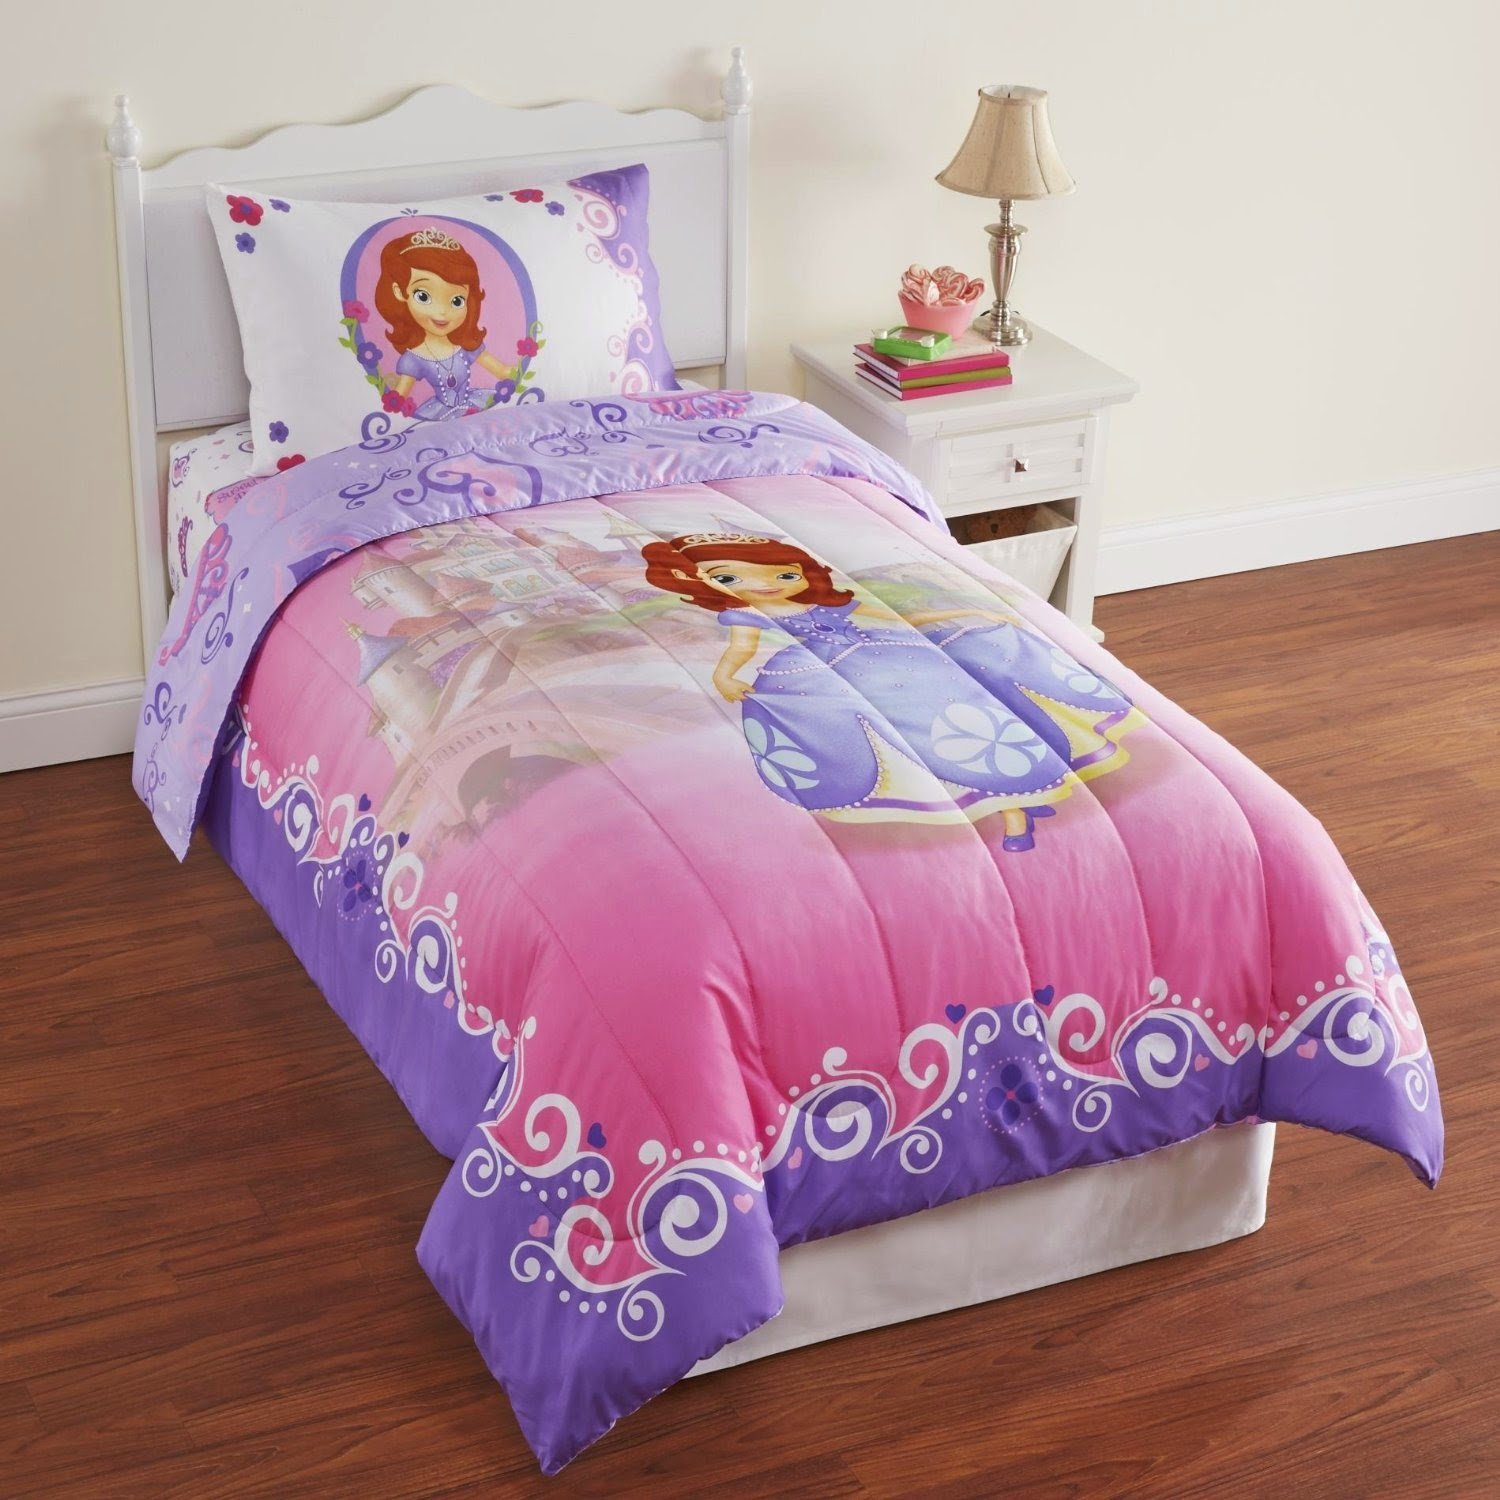 Best Bedroom Decor Ideas And Designs Top Eight Princess Sofia With Pictures